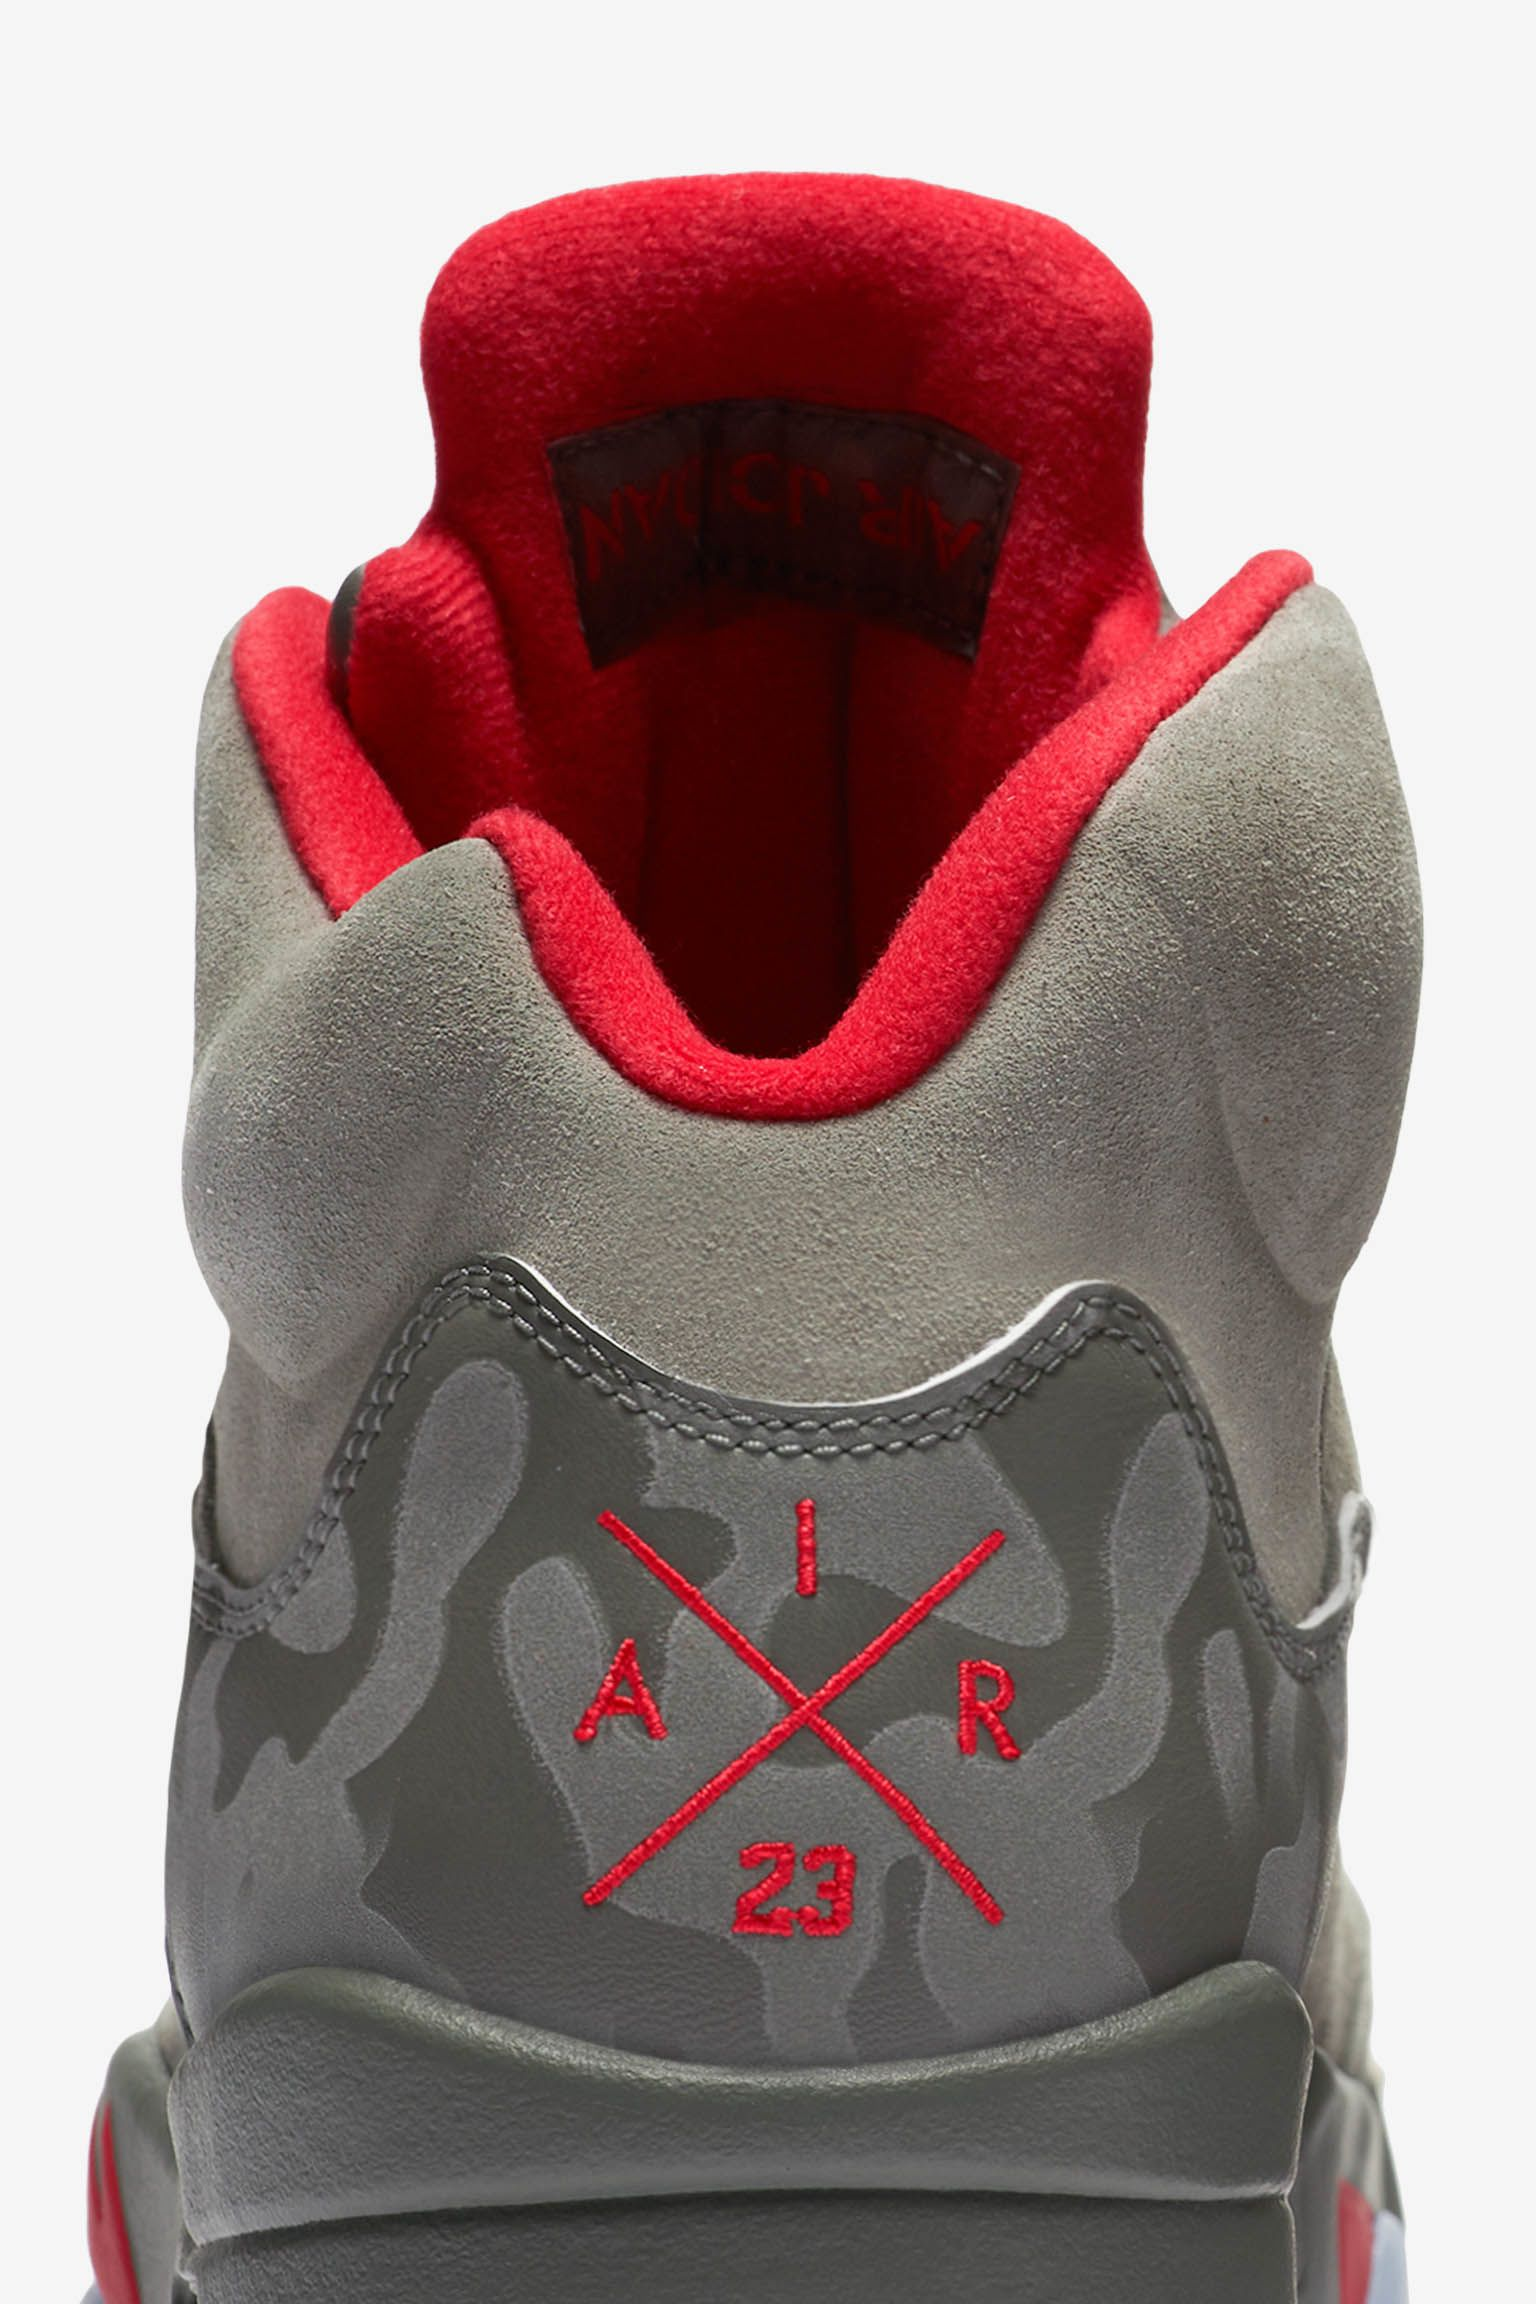 Air Jordan 5 Retro 'Dark Stucco & University Red' Release Date